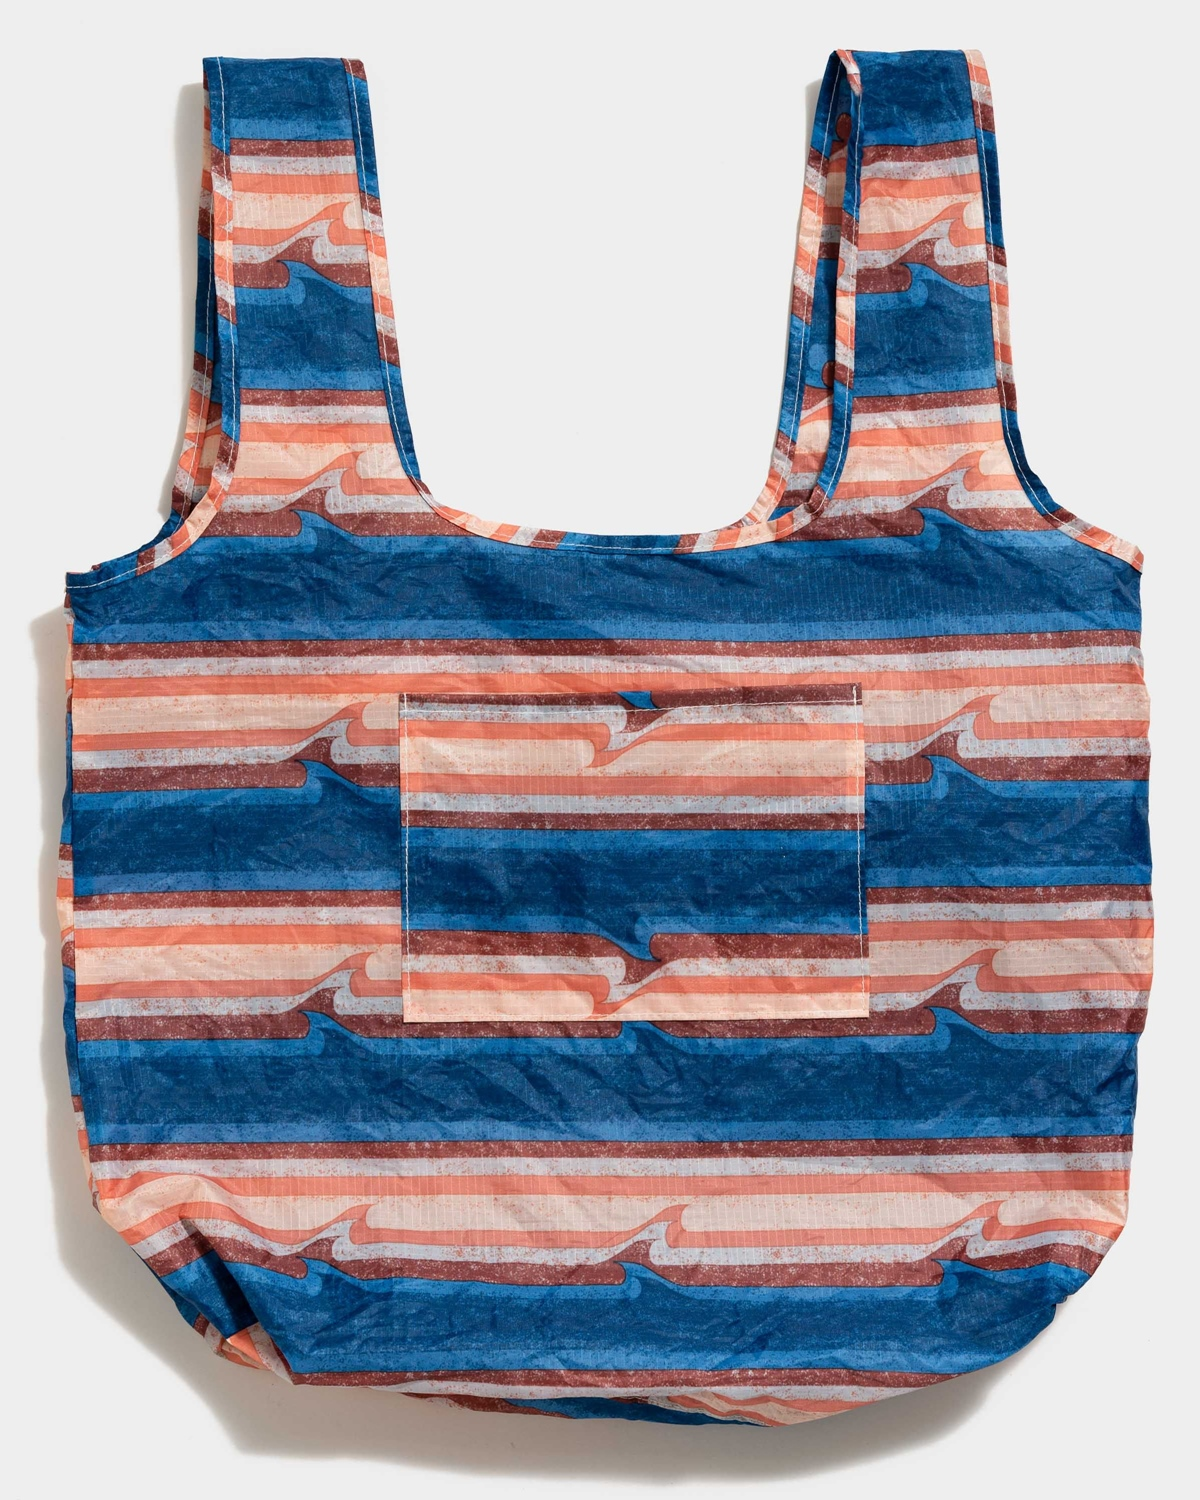 UNITED BY BLUE THE PACKABLE TOTE